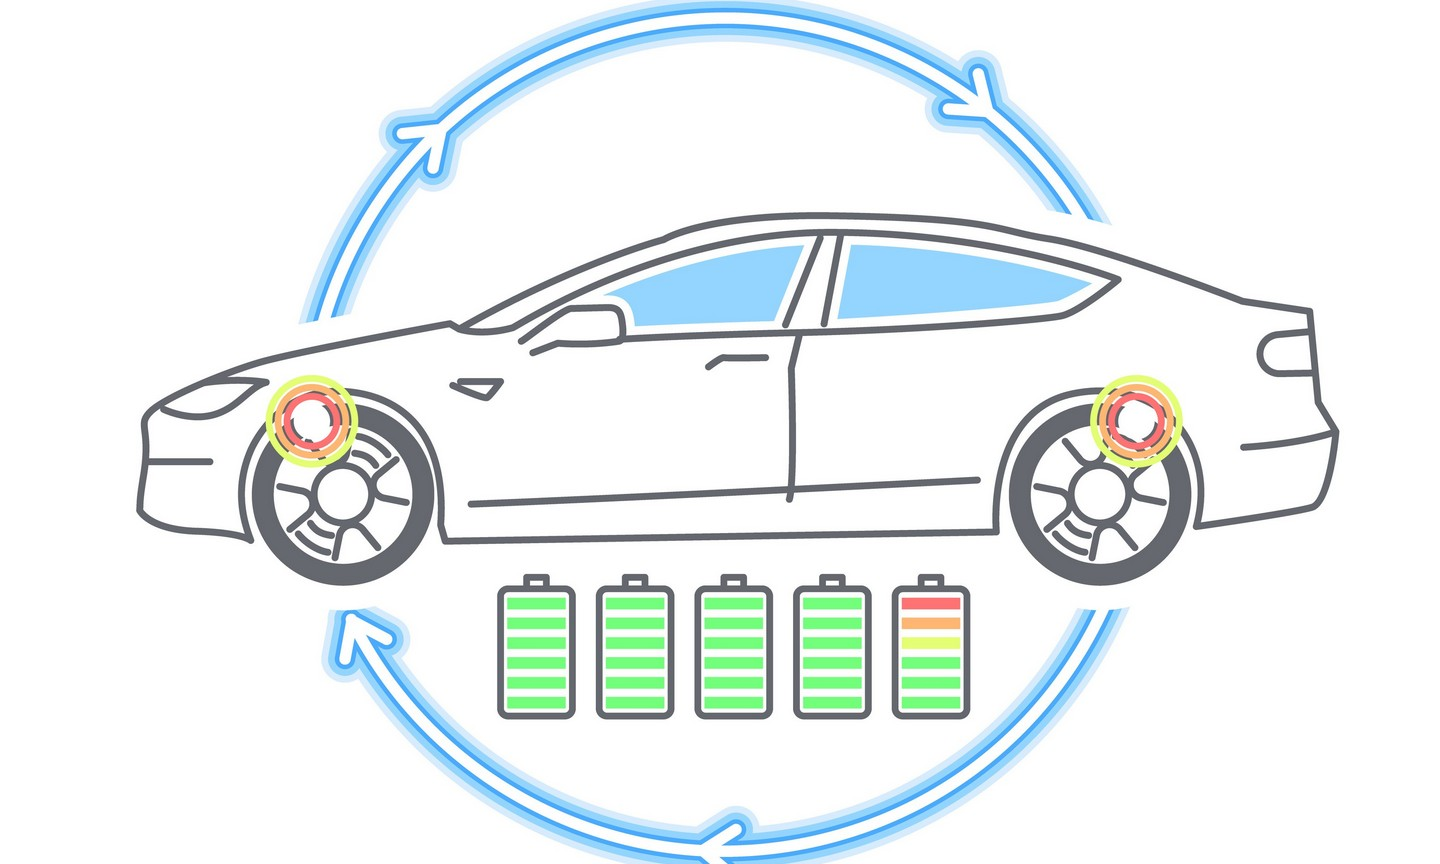 Today Technological Advancements Have Led To Regenerative Braking Which Can Capture That Previously Lost Energy